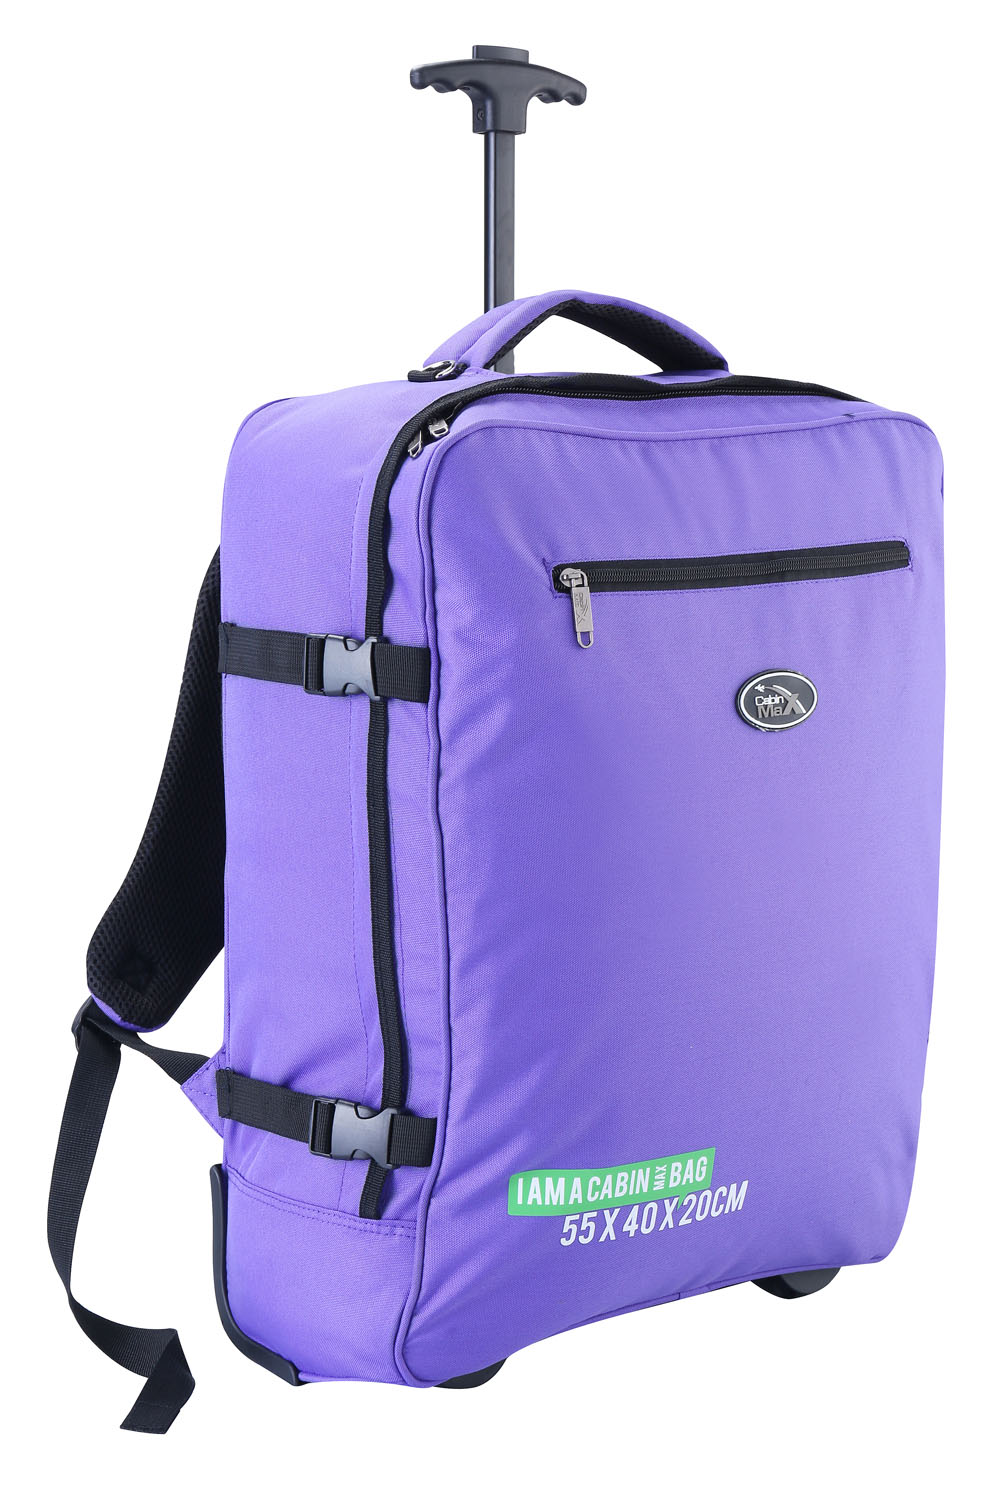 Cabin Max Madrid plus in purple